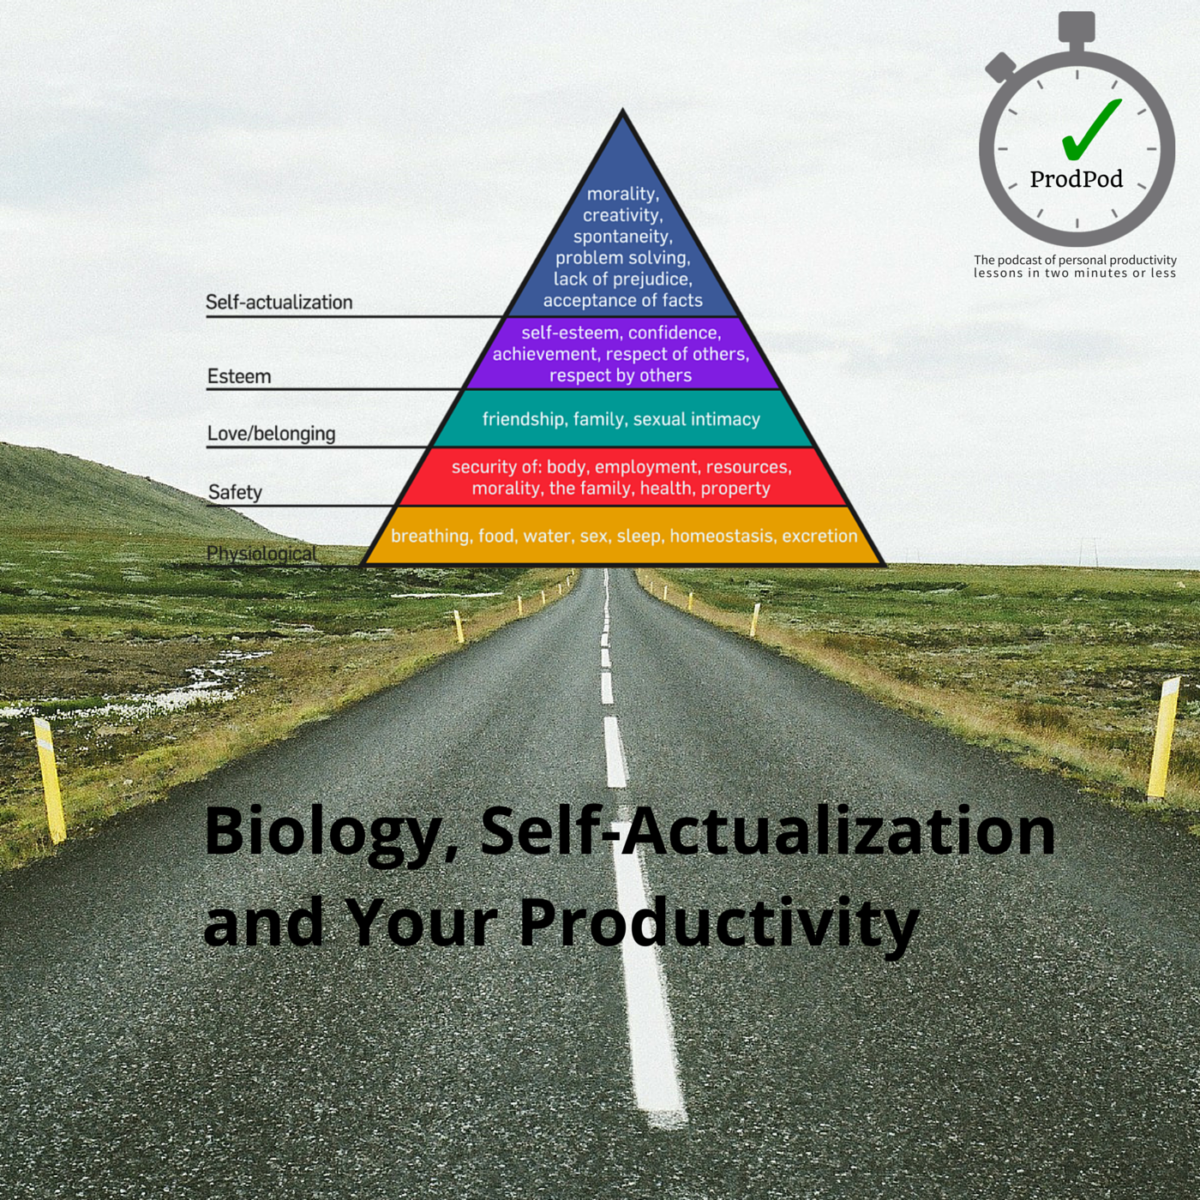 ProdPod - Episode 90 - Biology, Self-Actualization and Your Productivity